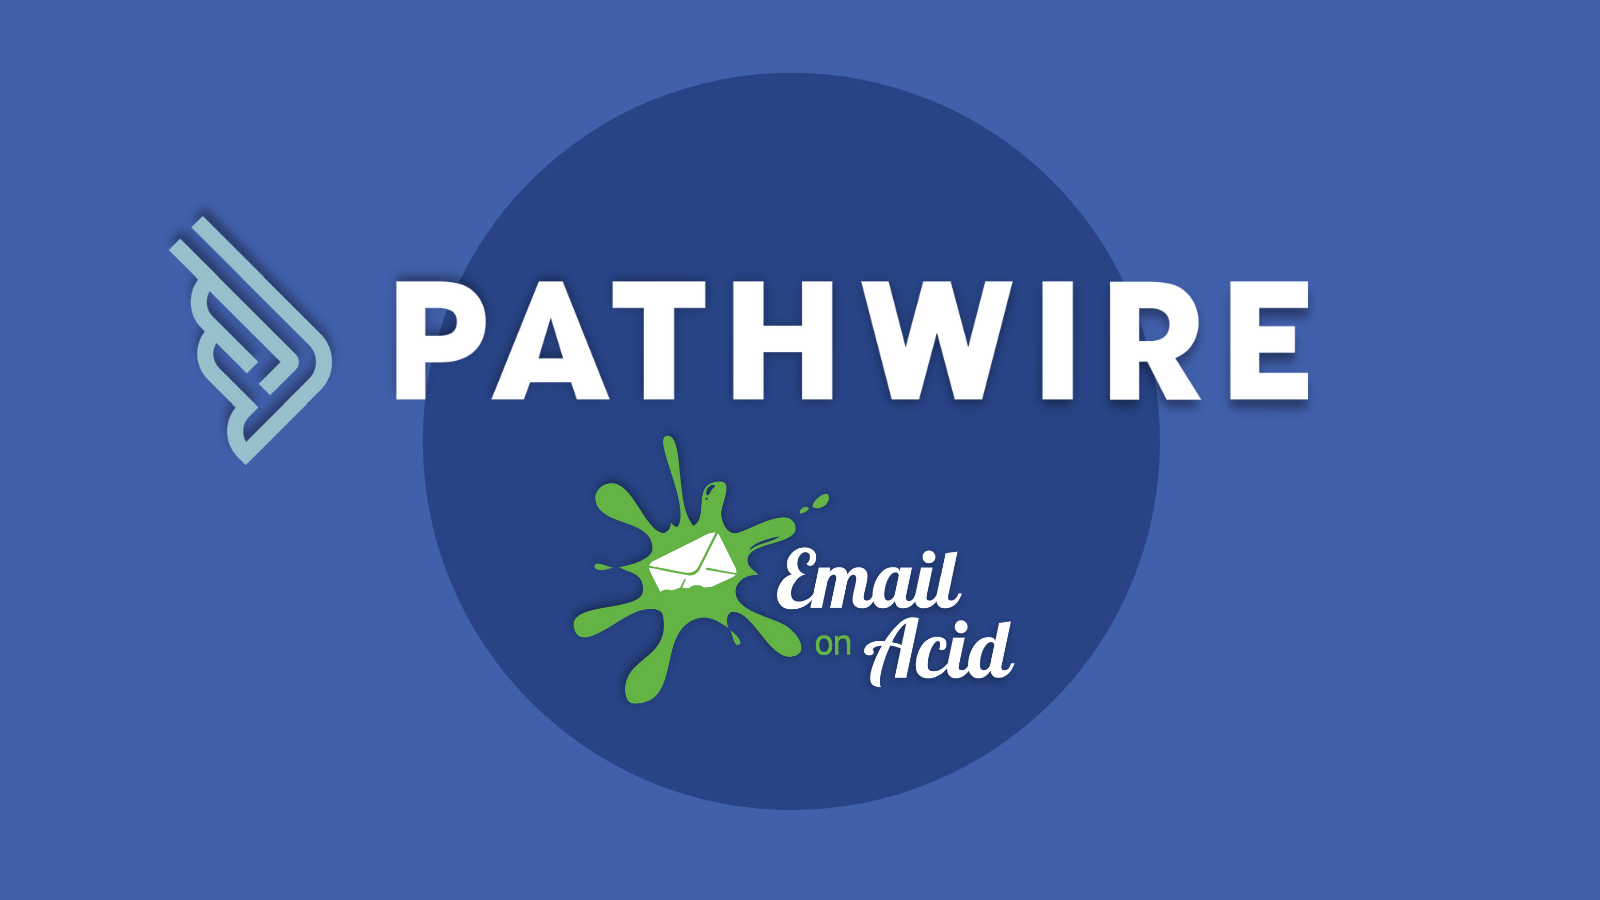 Pathwire and Email on Acid logos